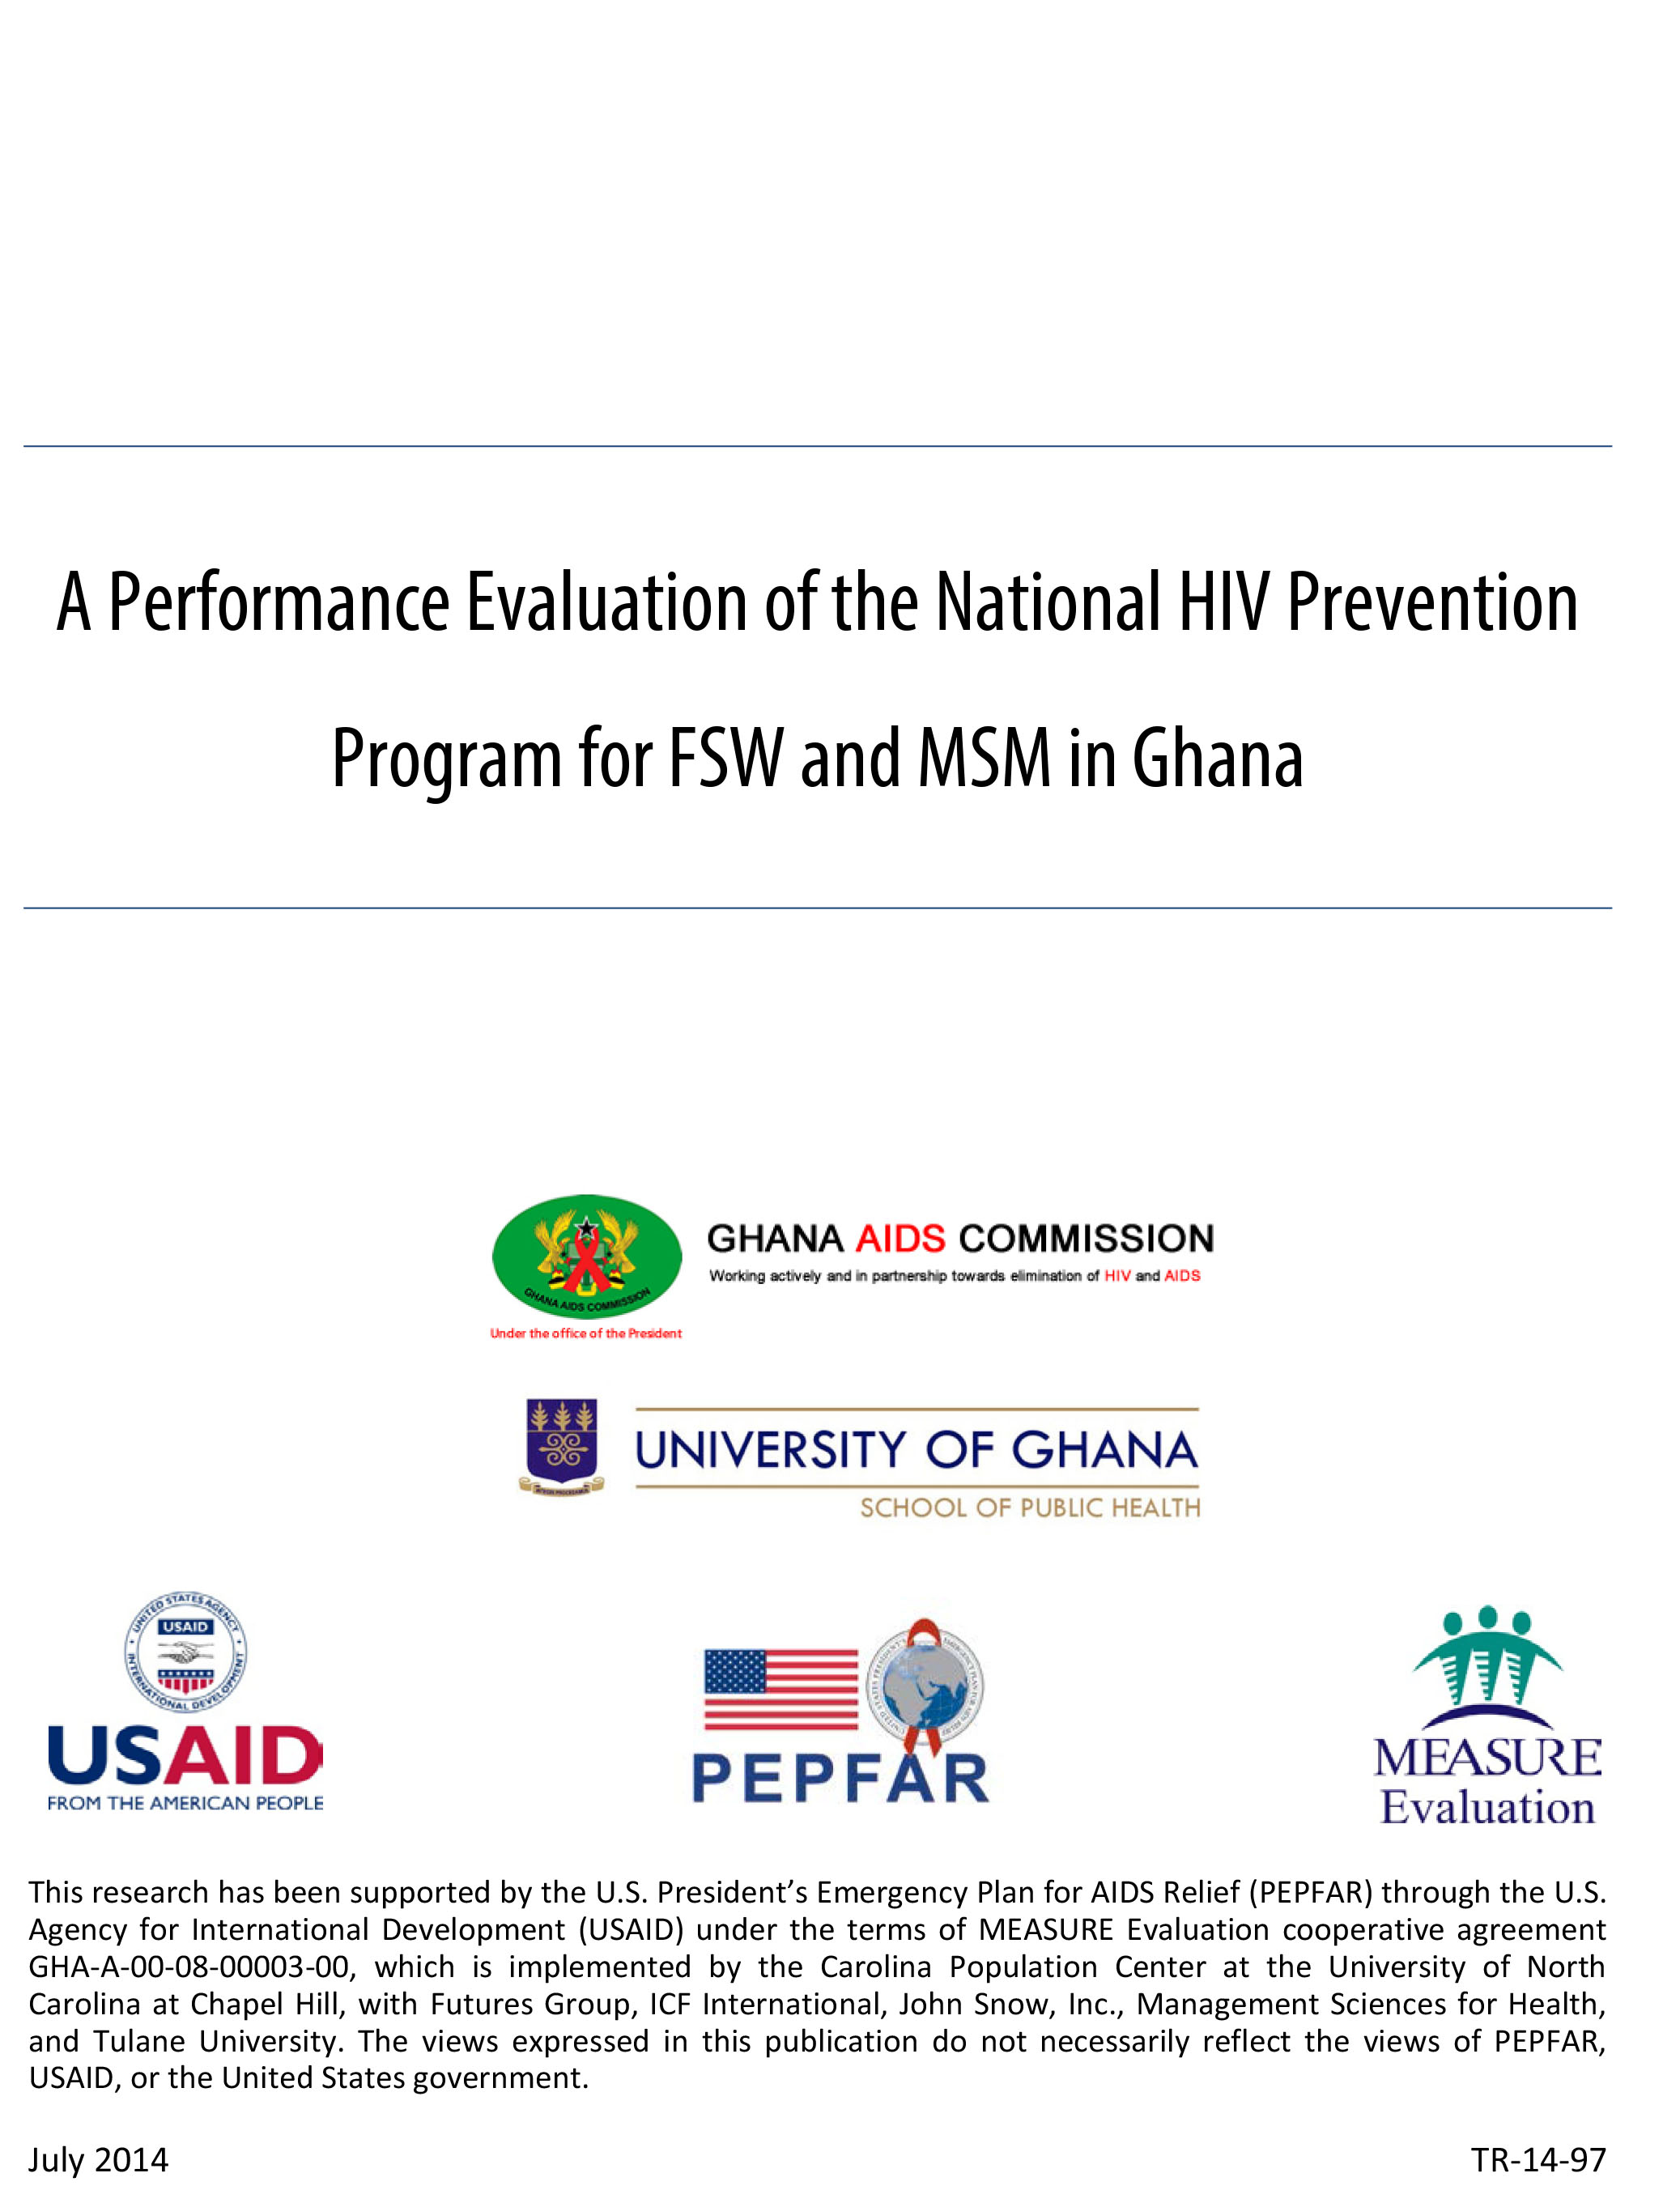 A Performance Evaluation of the National HIV Prevention Program for FSW and MSM in Ghana